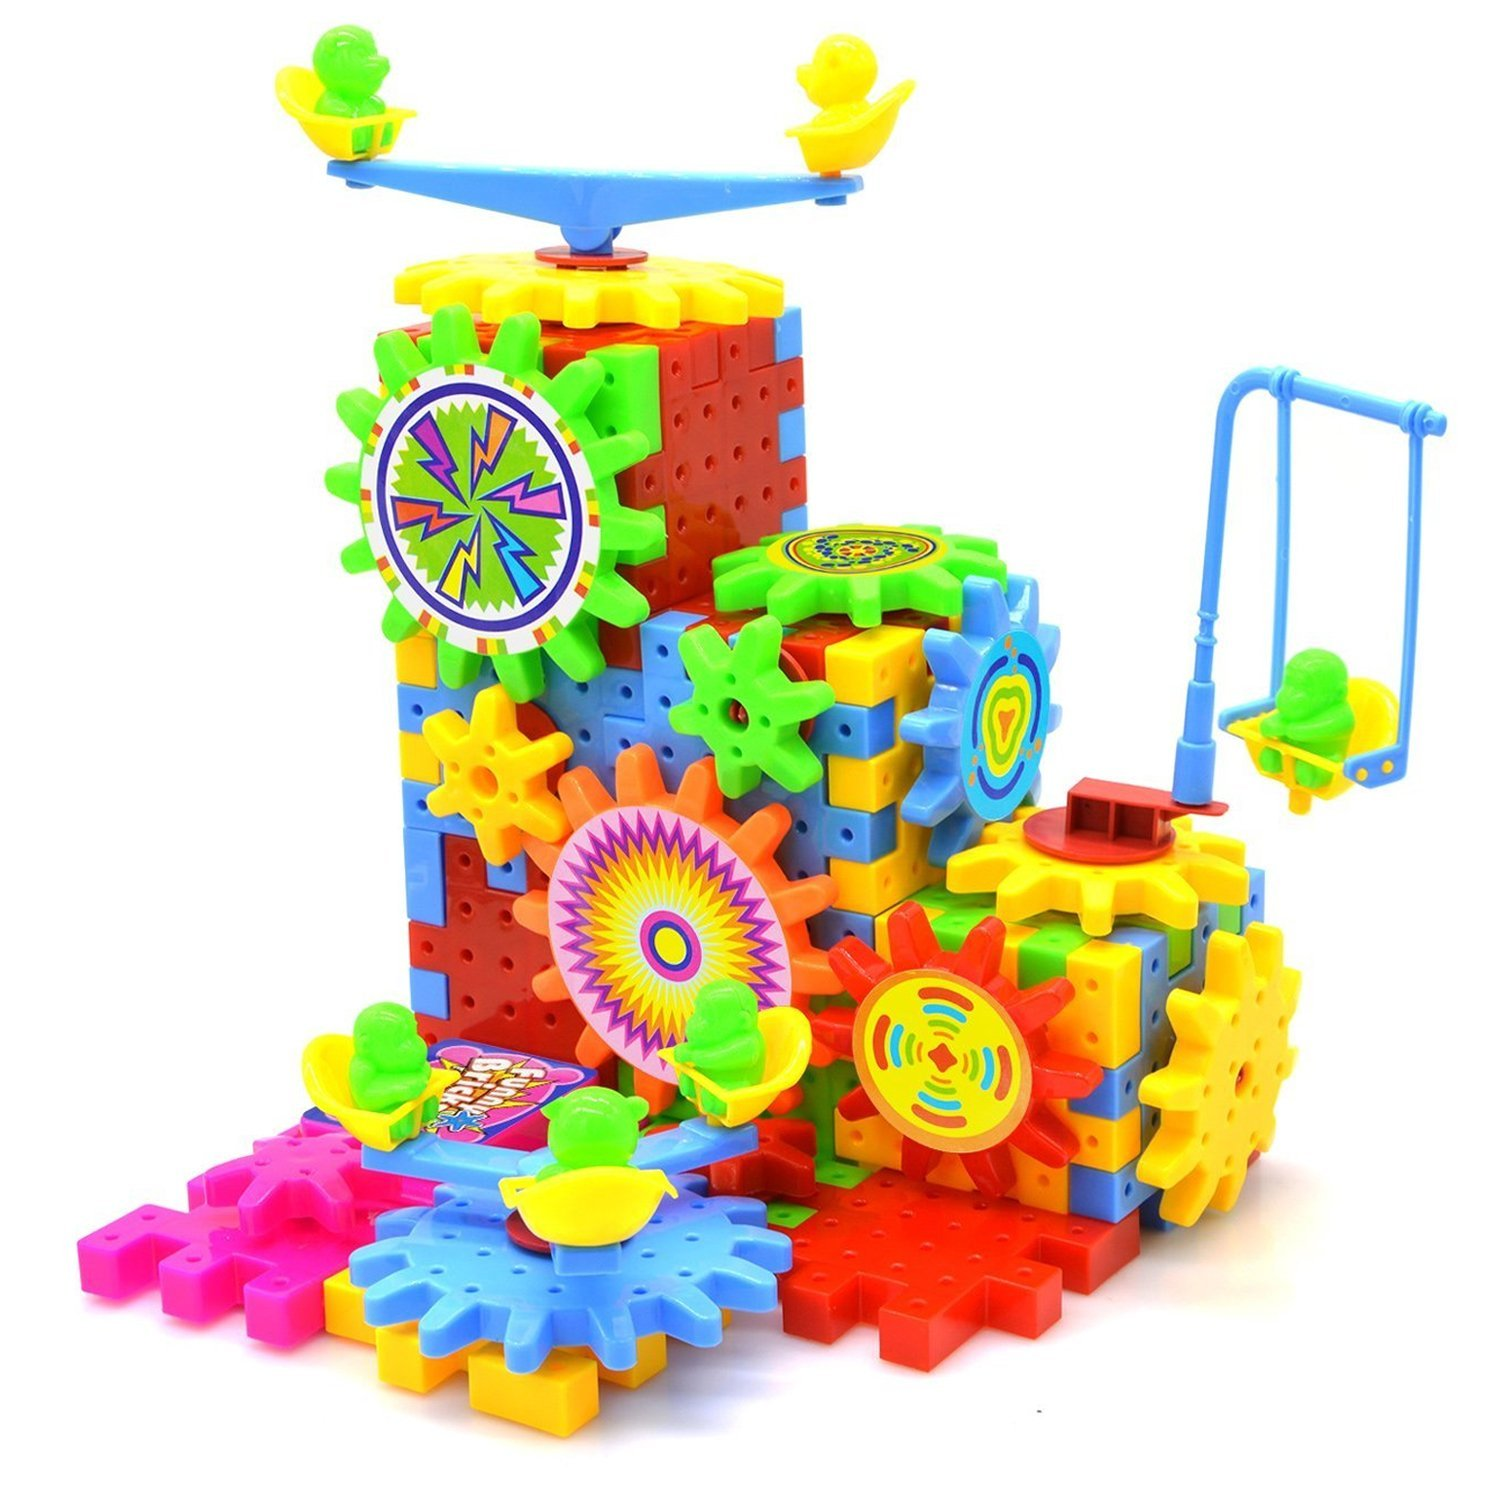 Buy Baby Building Toy, Baztoy Stacking Blocks Building Puzzles ...